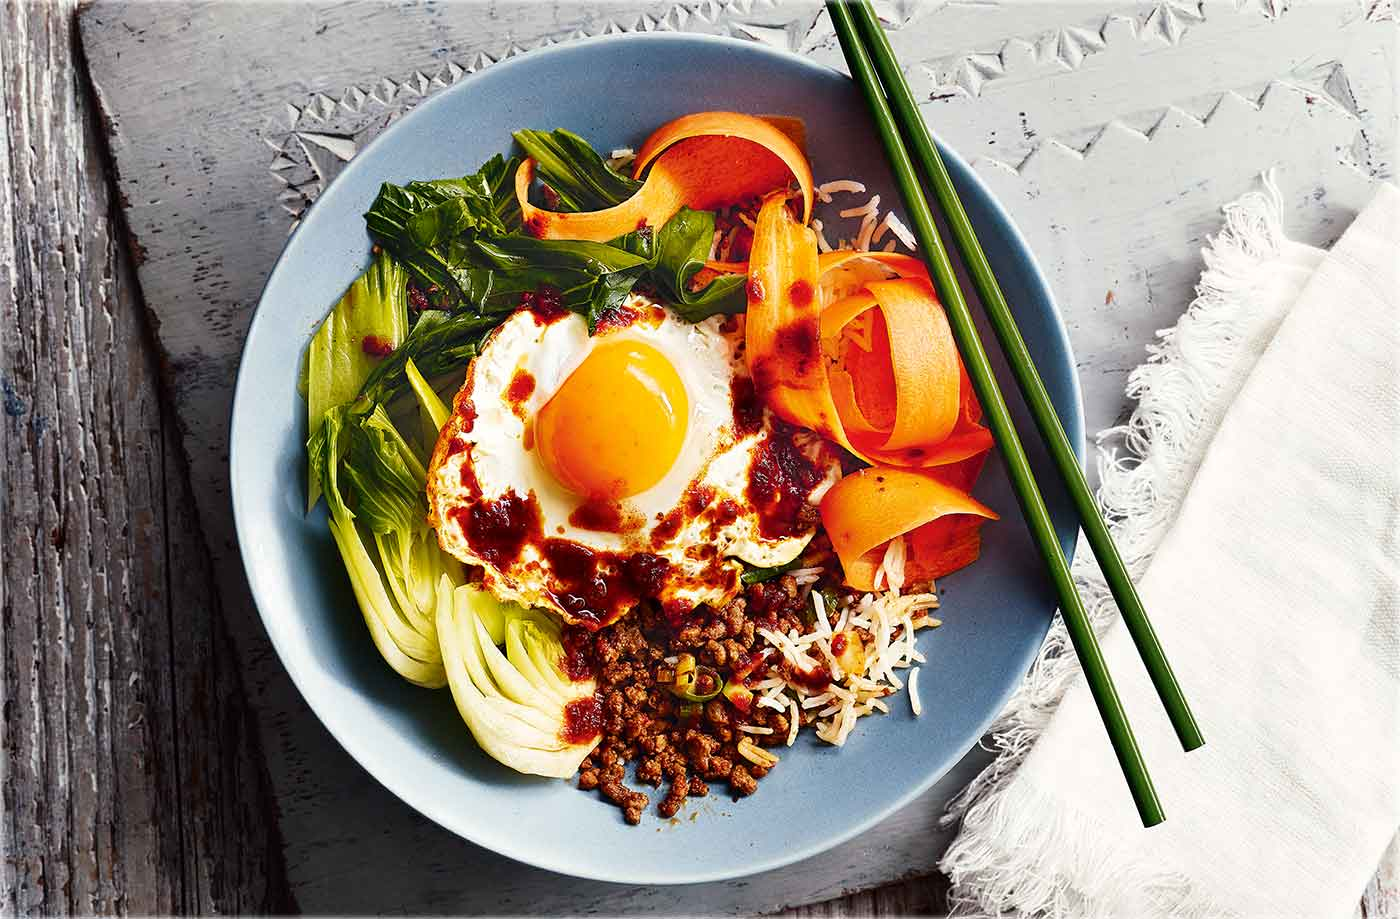 Korean-style beef bibimbap recipe